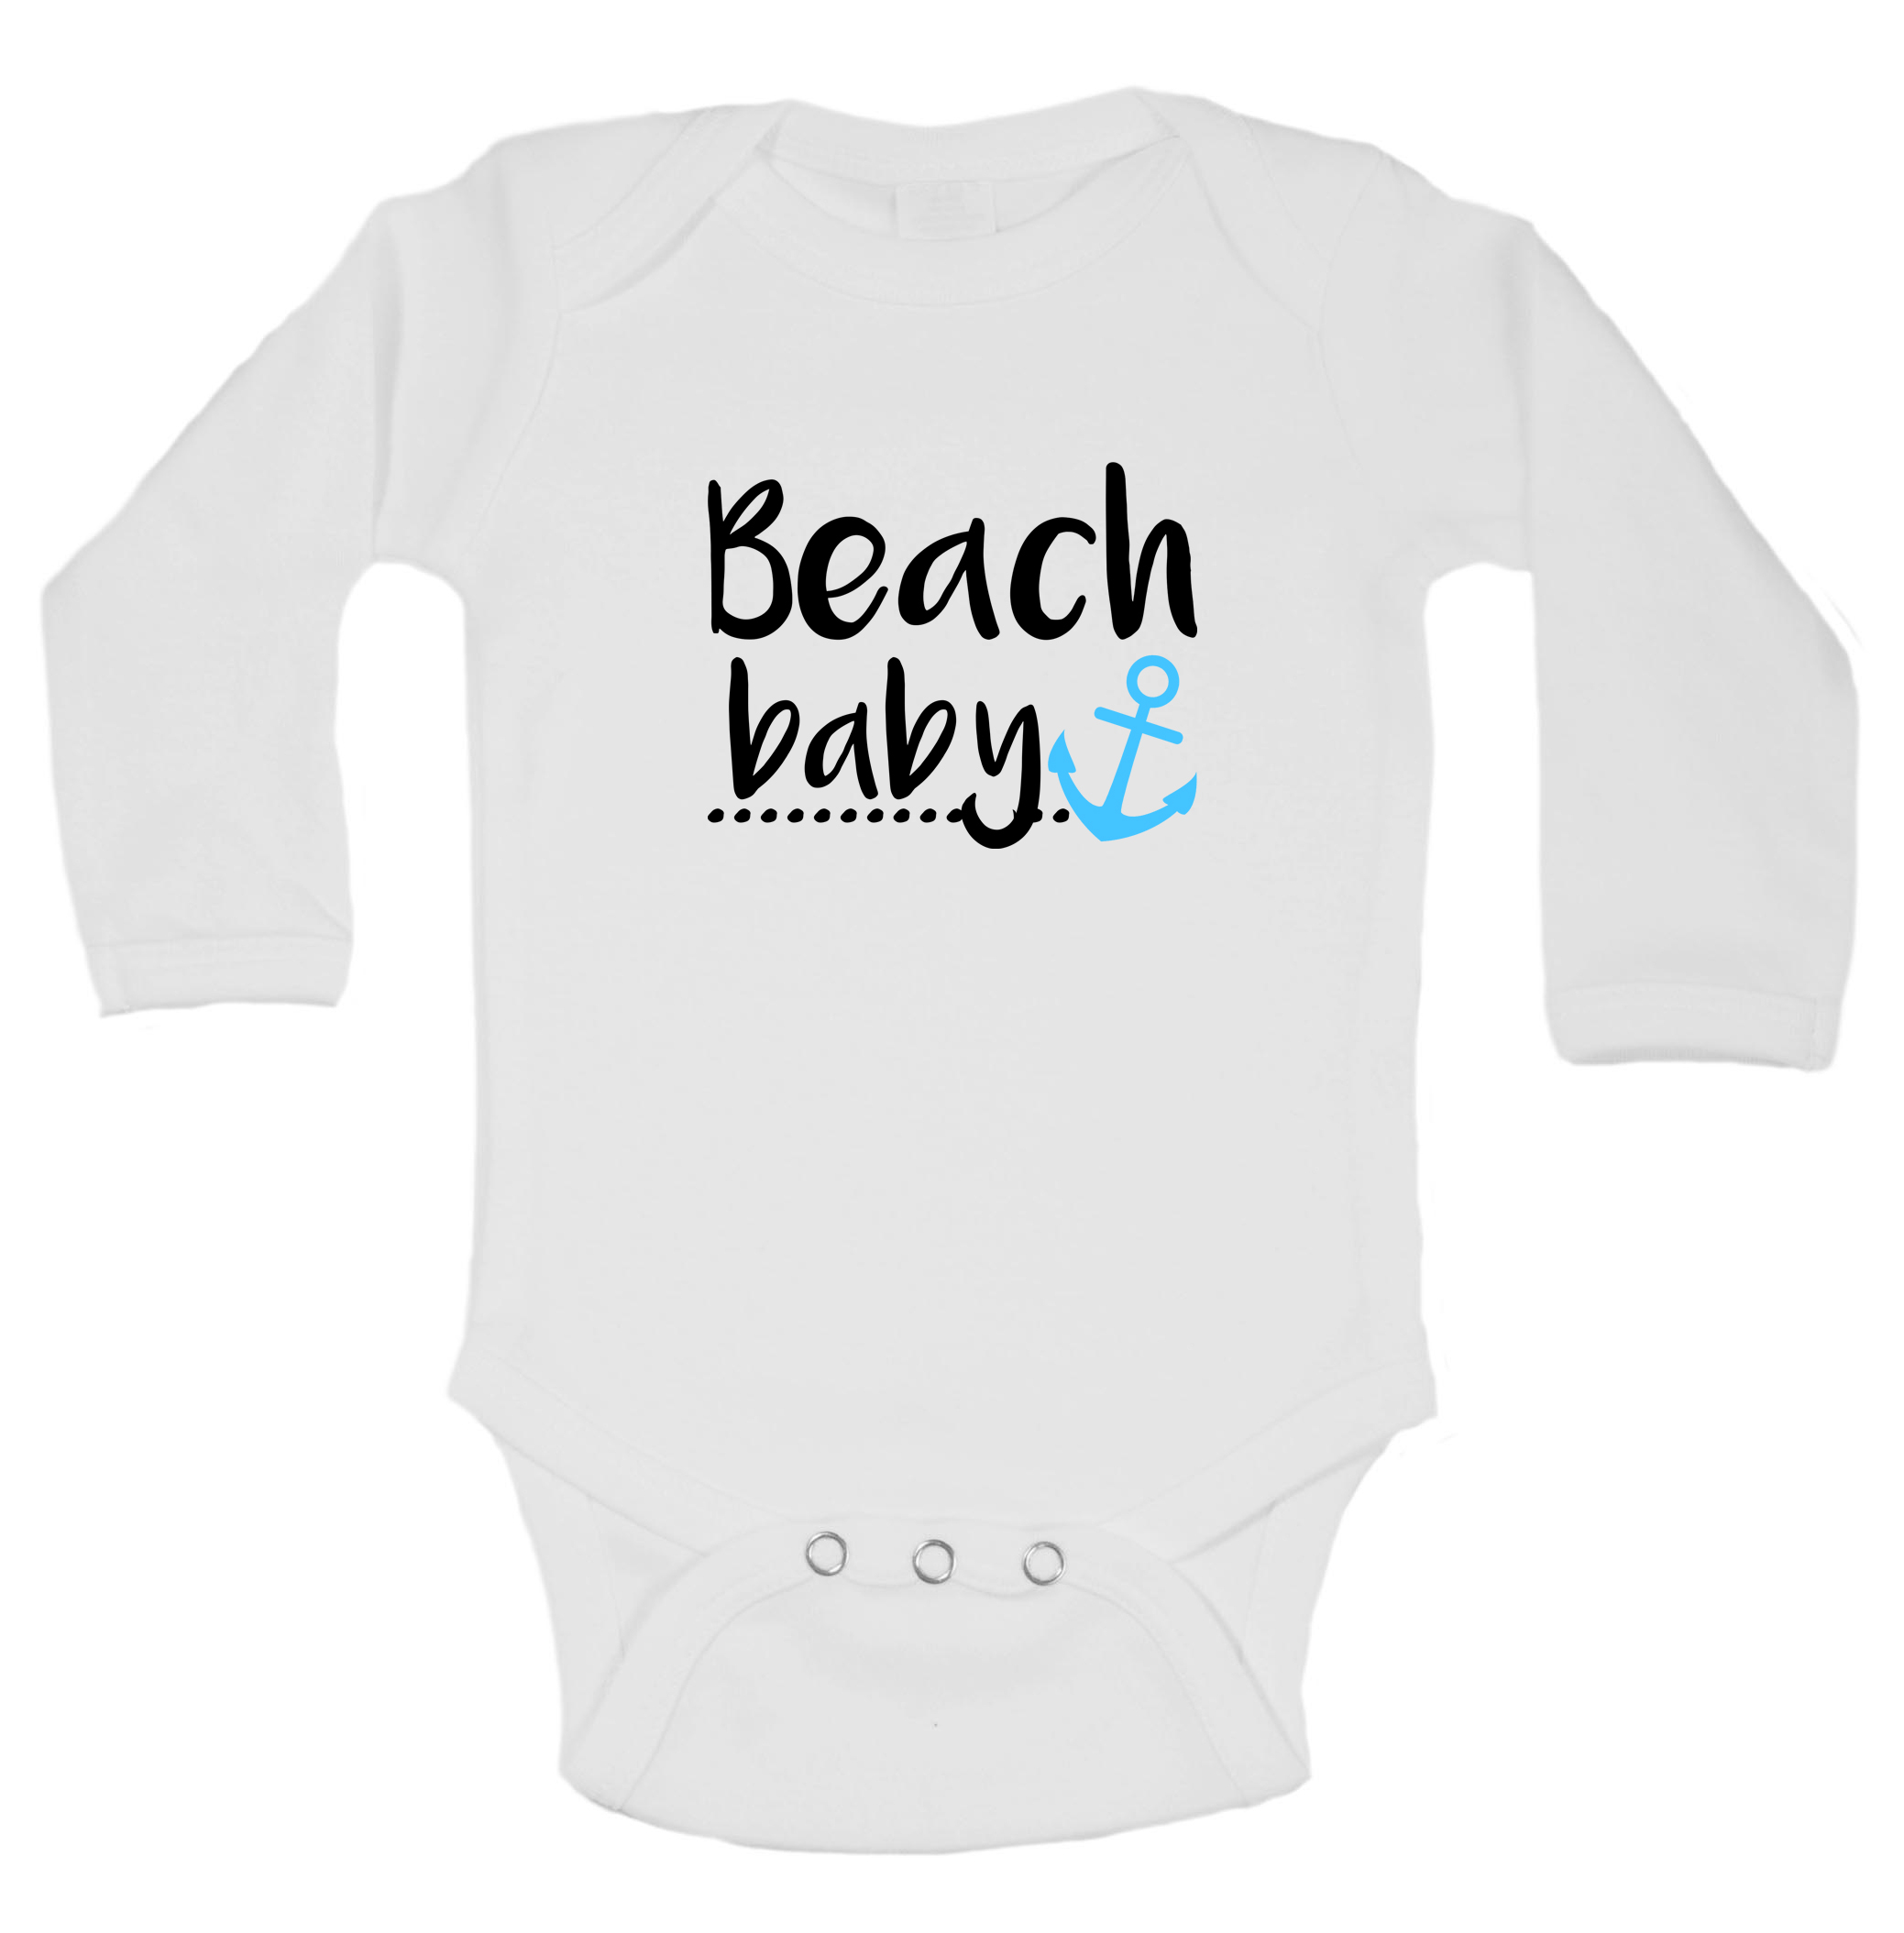 Baby/'s First Beach Trip Infant Bodysuit *Multiple Beach Decals and Colors Available*